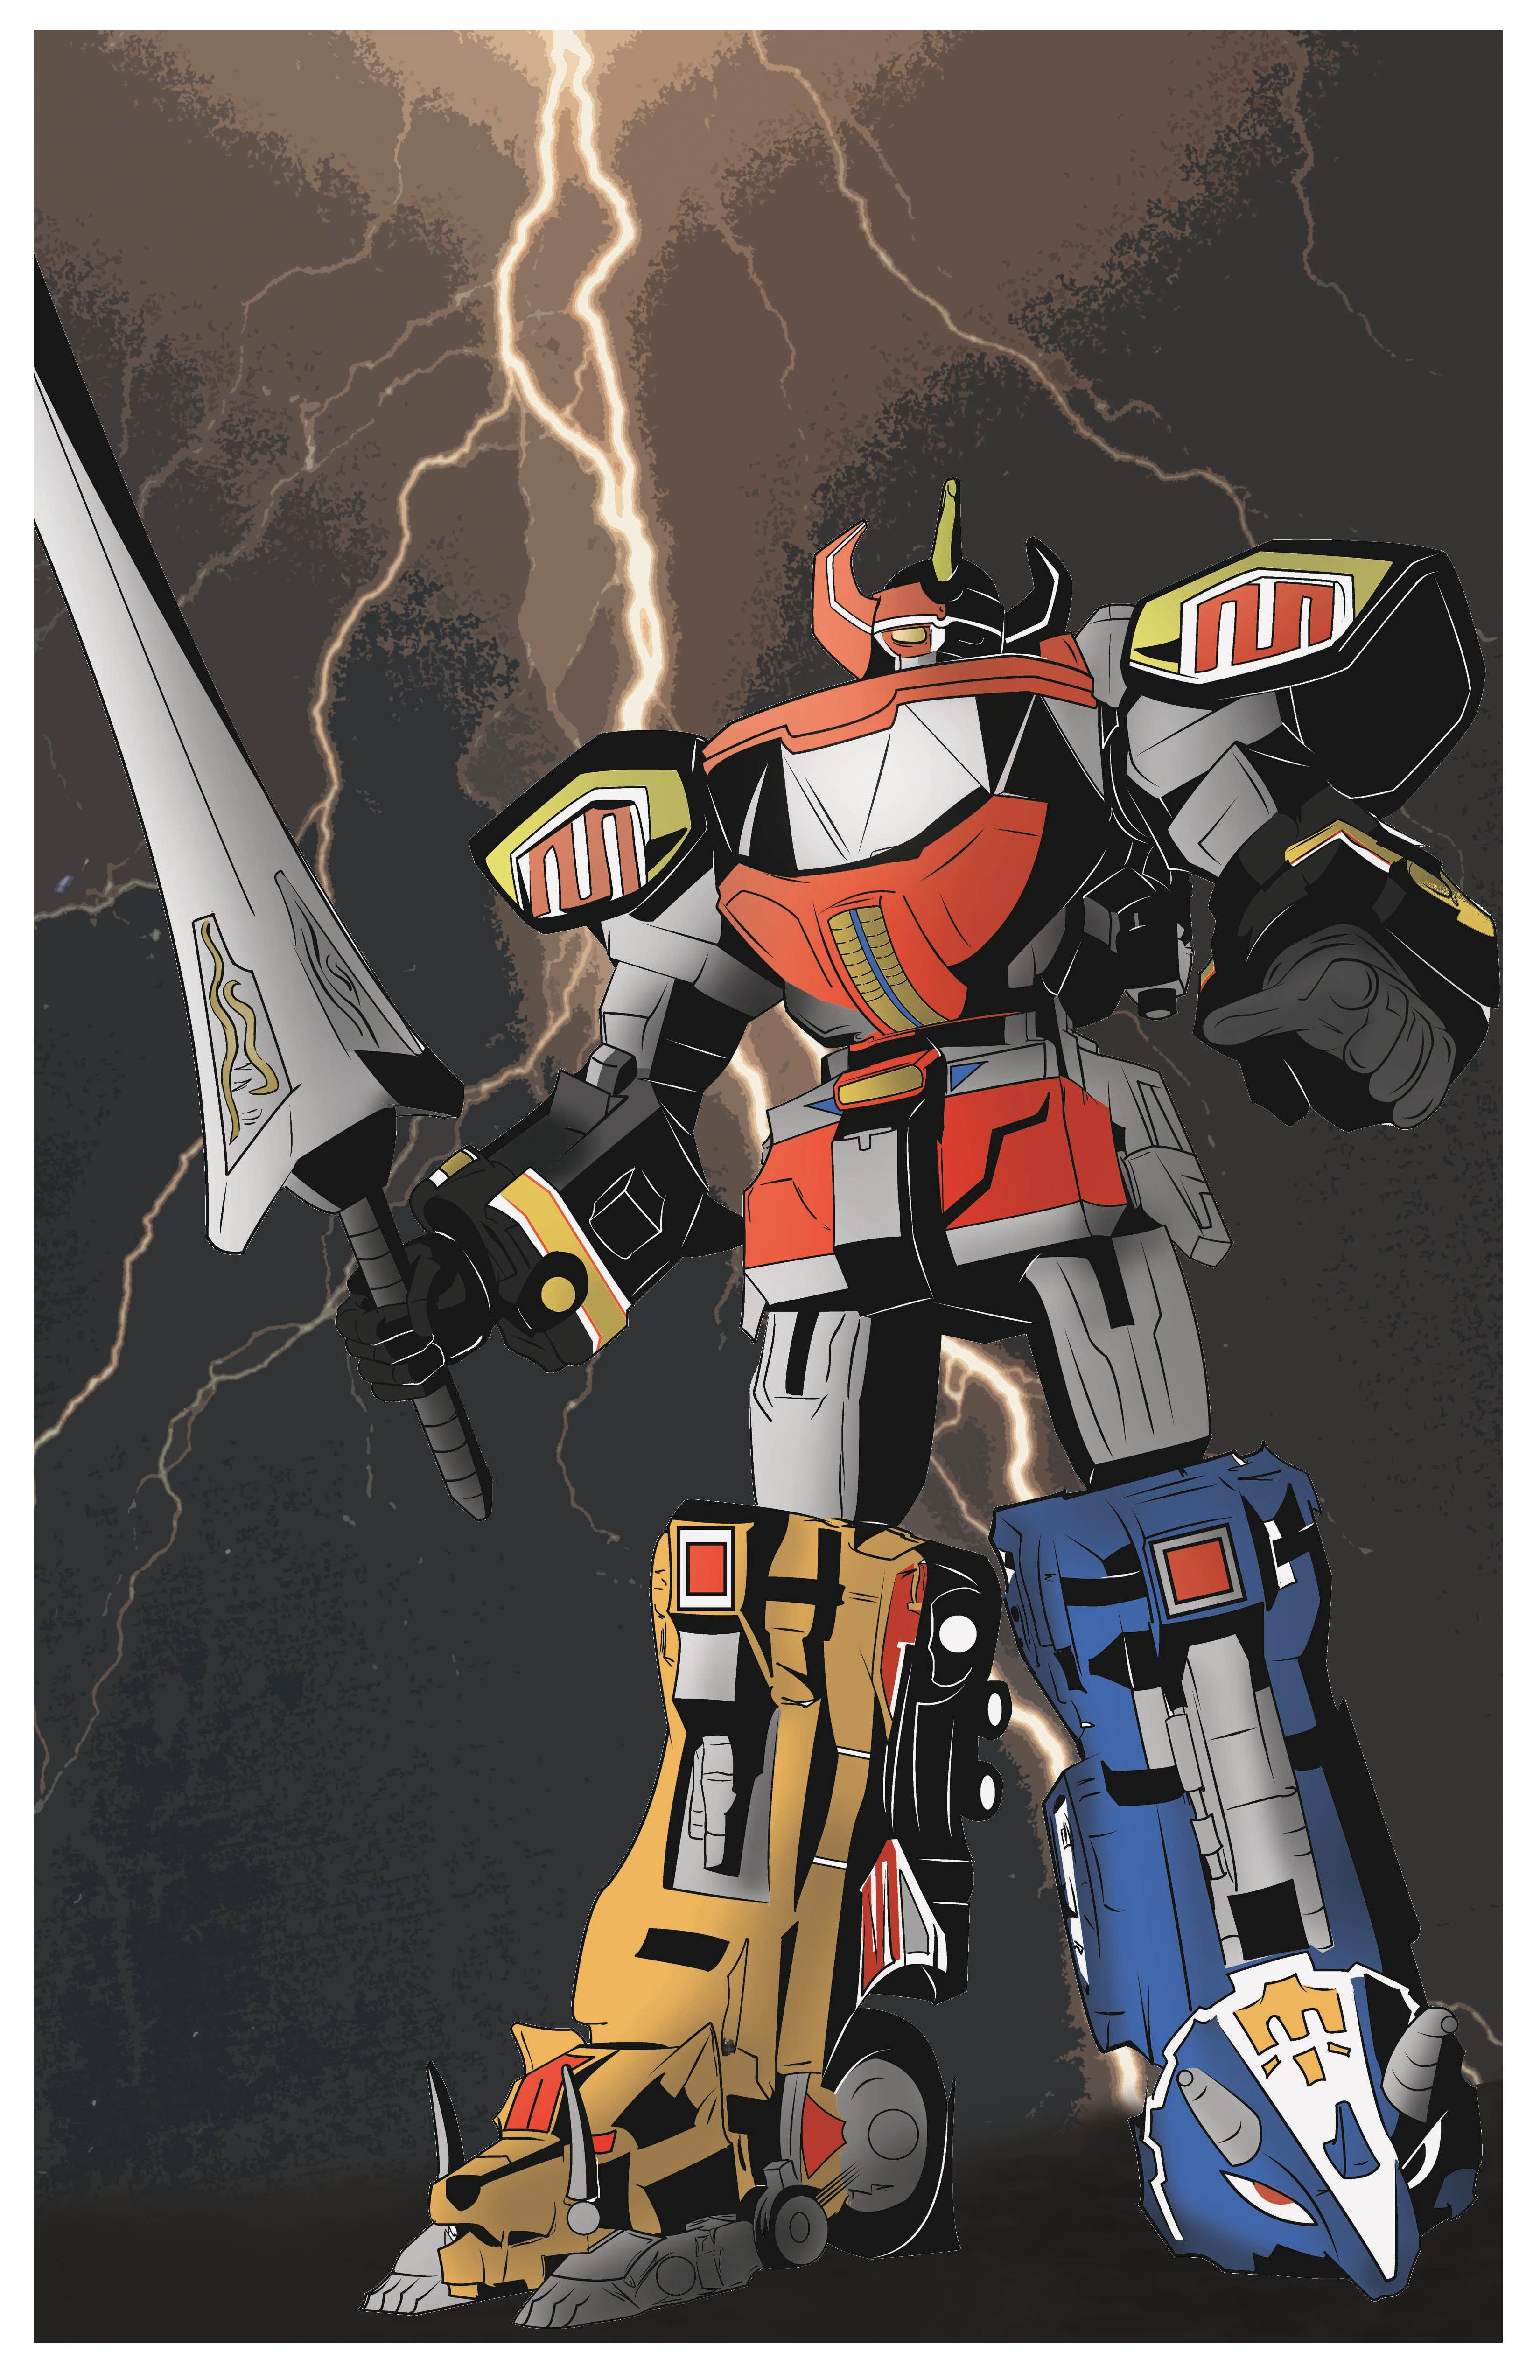 The Megazord